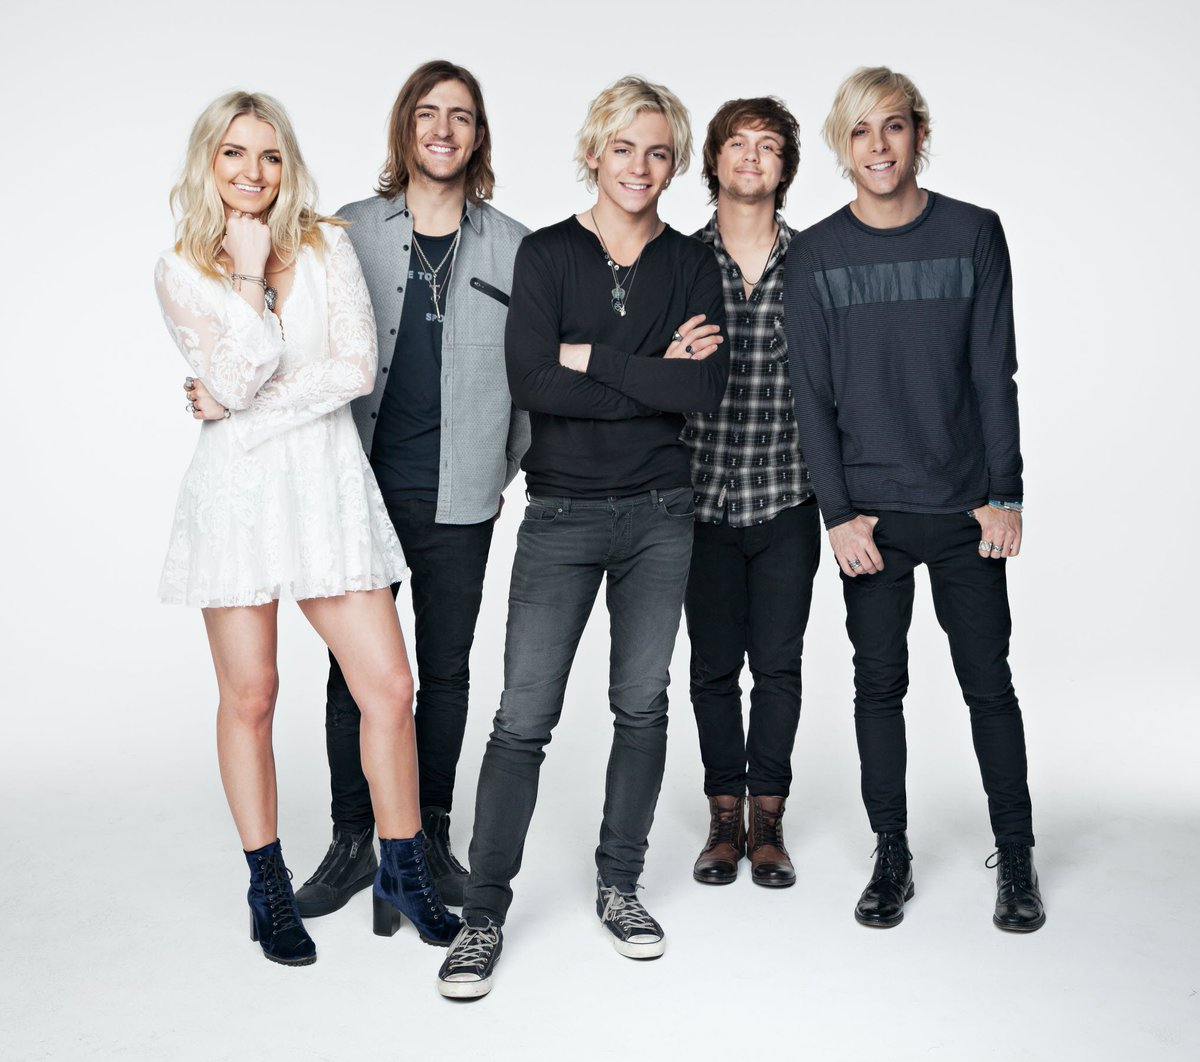 Ring in your #NYE with @OfficialR5 on 12/29, 12/31 & 1/1. Ticket are on sale. https://t.co/5cIEDtpZpe https://t.co/eaedX5TUXw